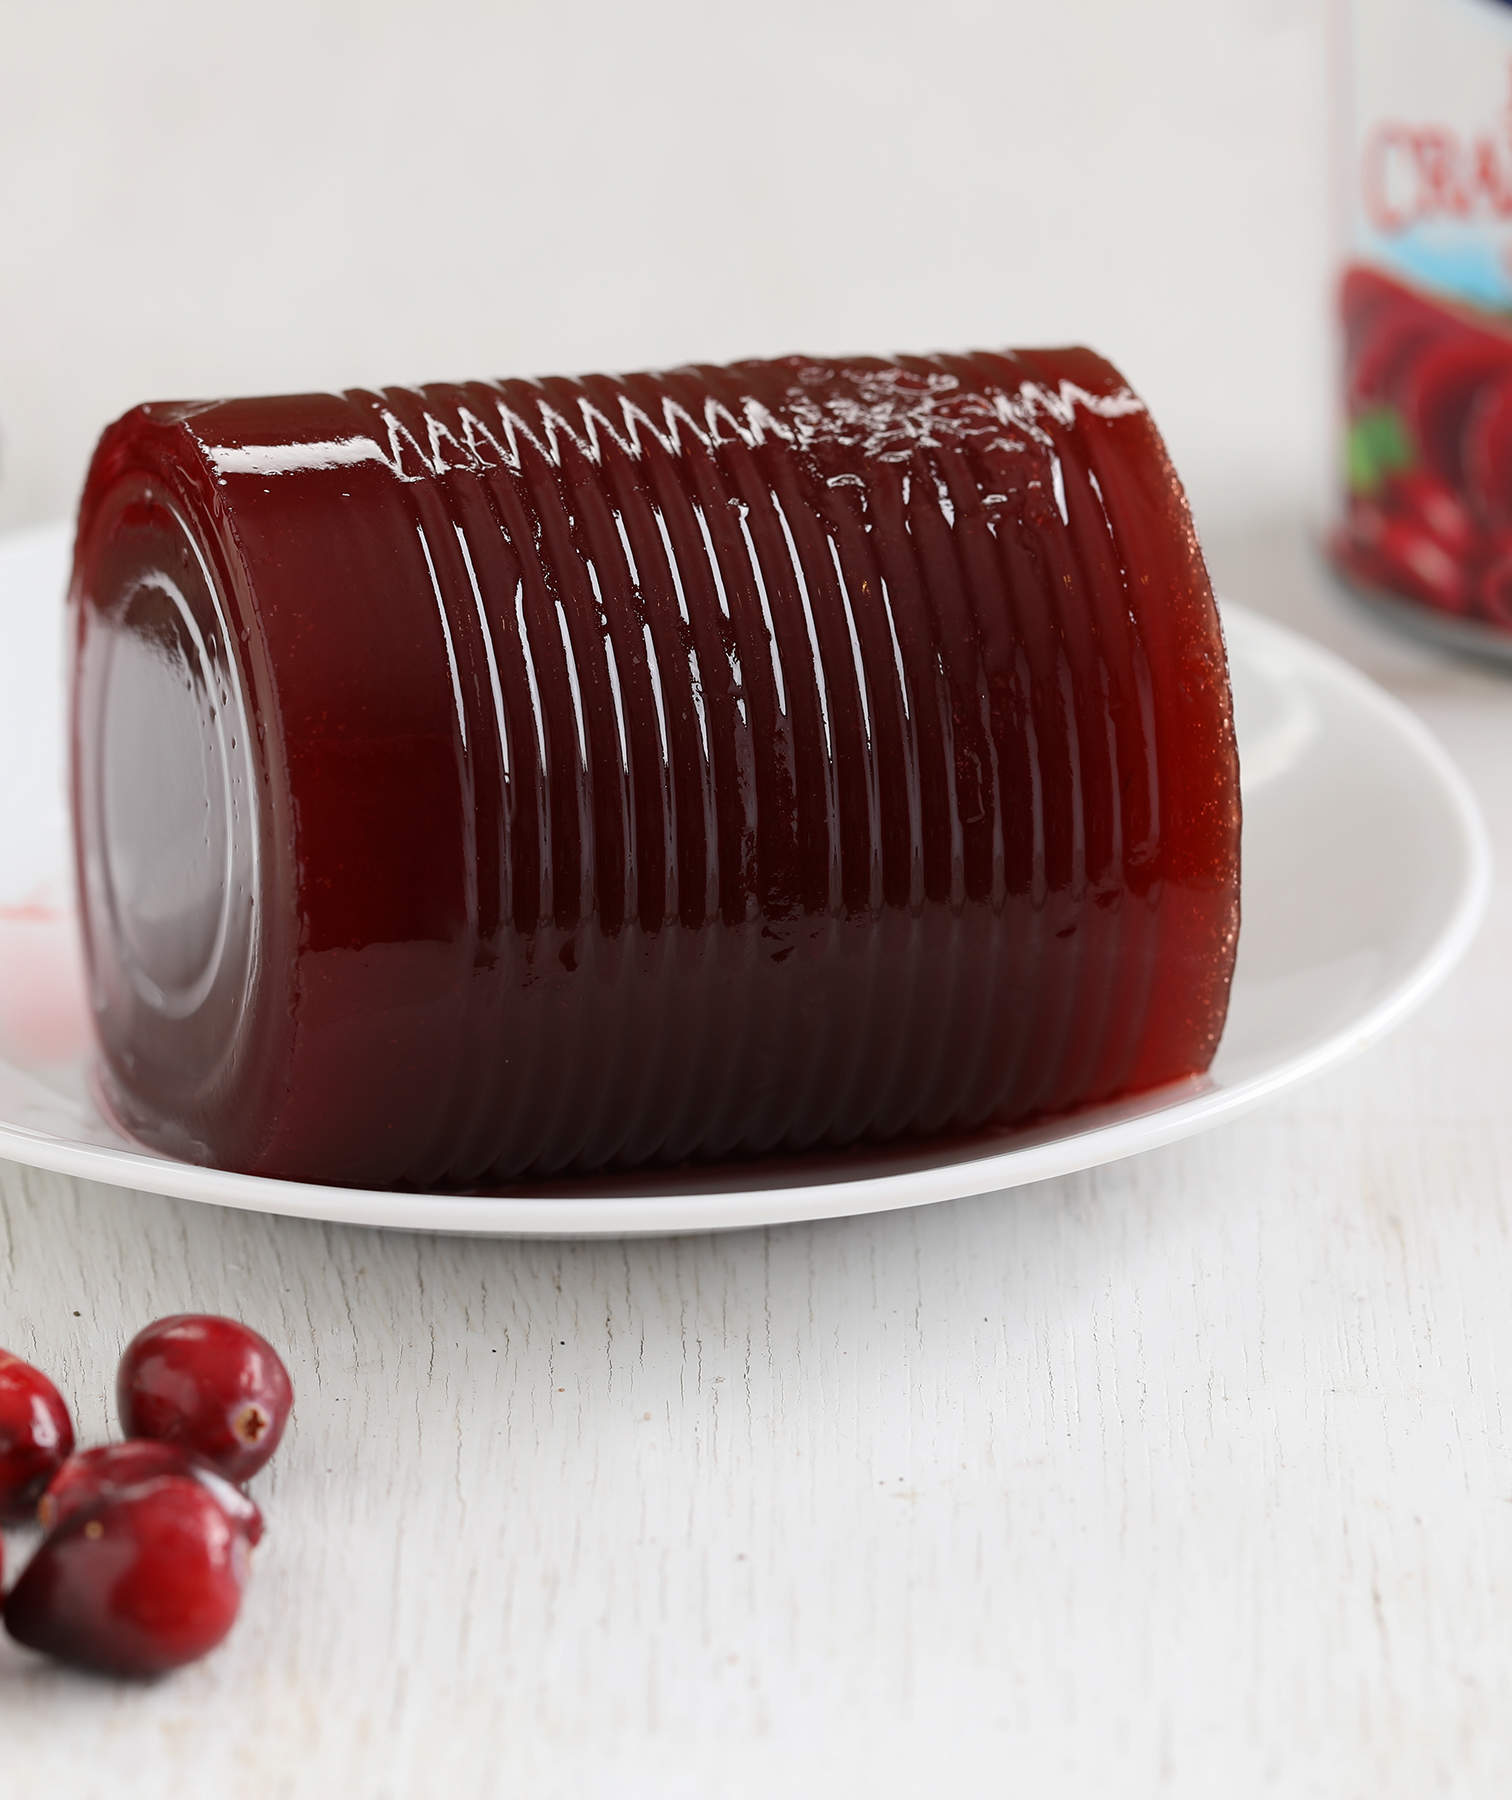 Surprising Facts You May Not Know About Canned Cranberry Sauce